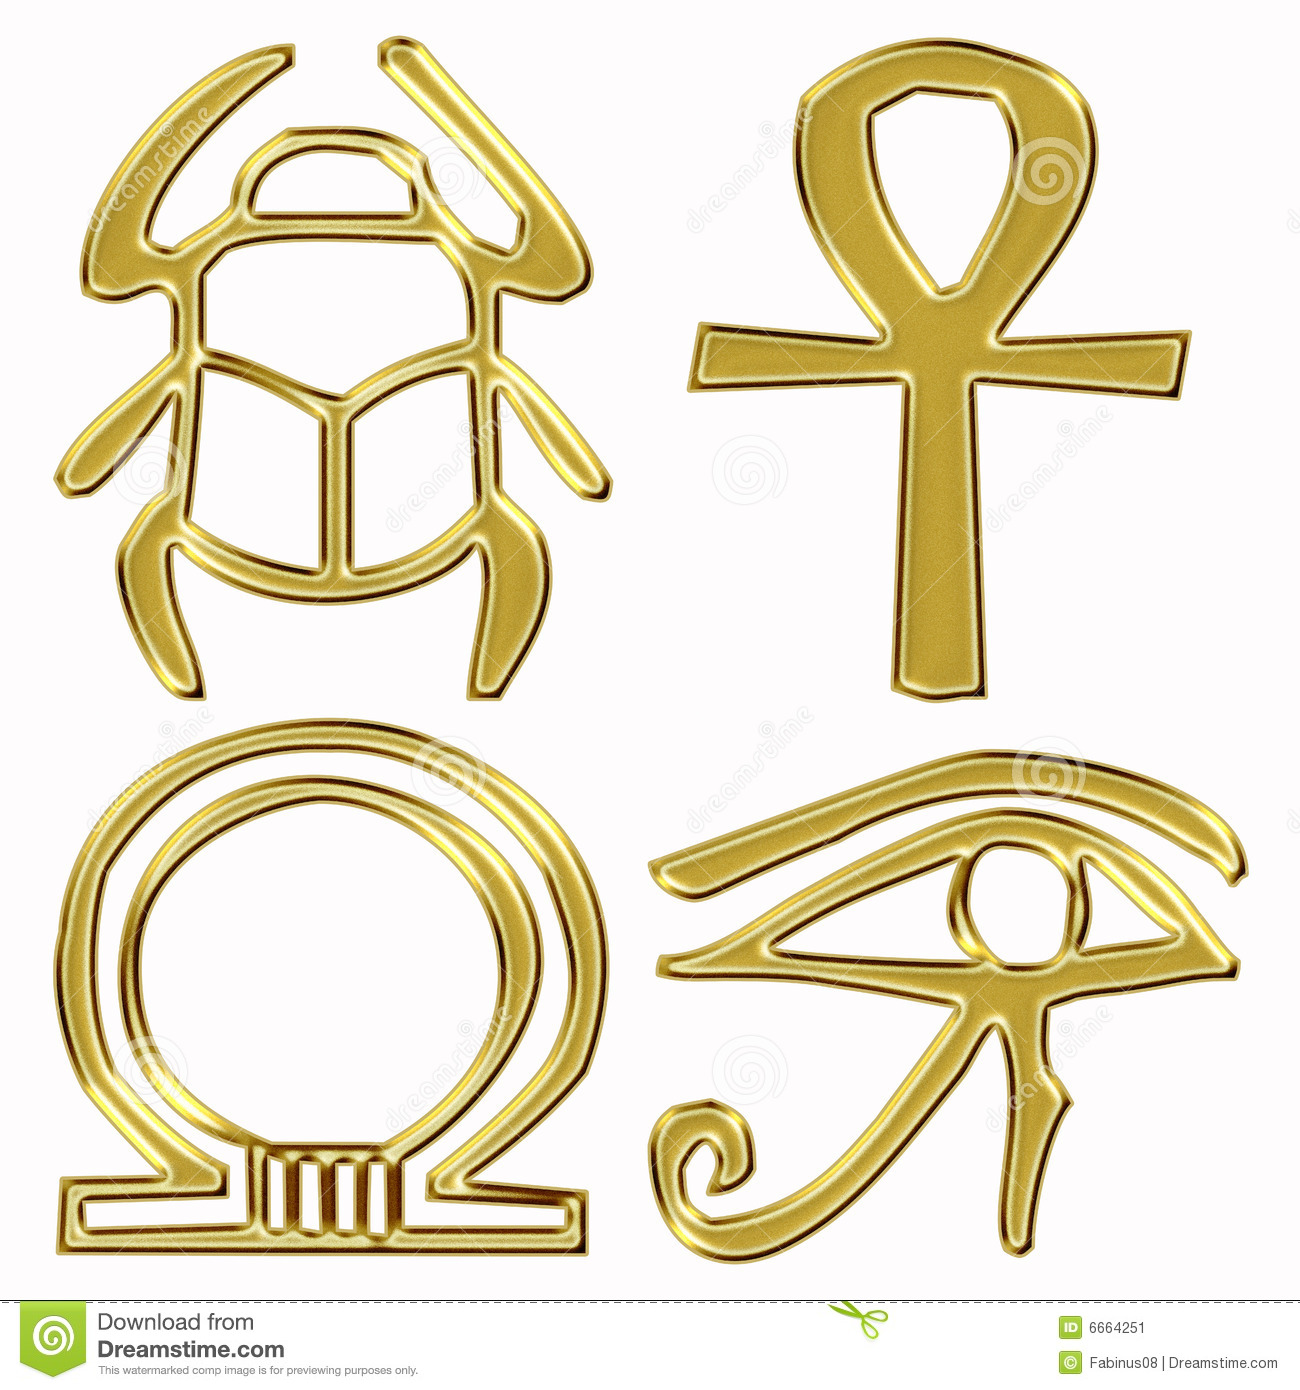 Gold egyptian symbol stock illustration illustration of ball gold egyptian symbol buycottarizona Image collections